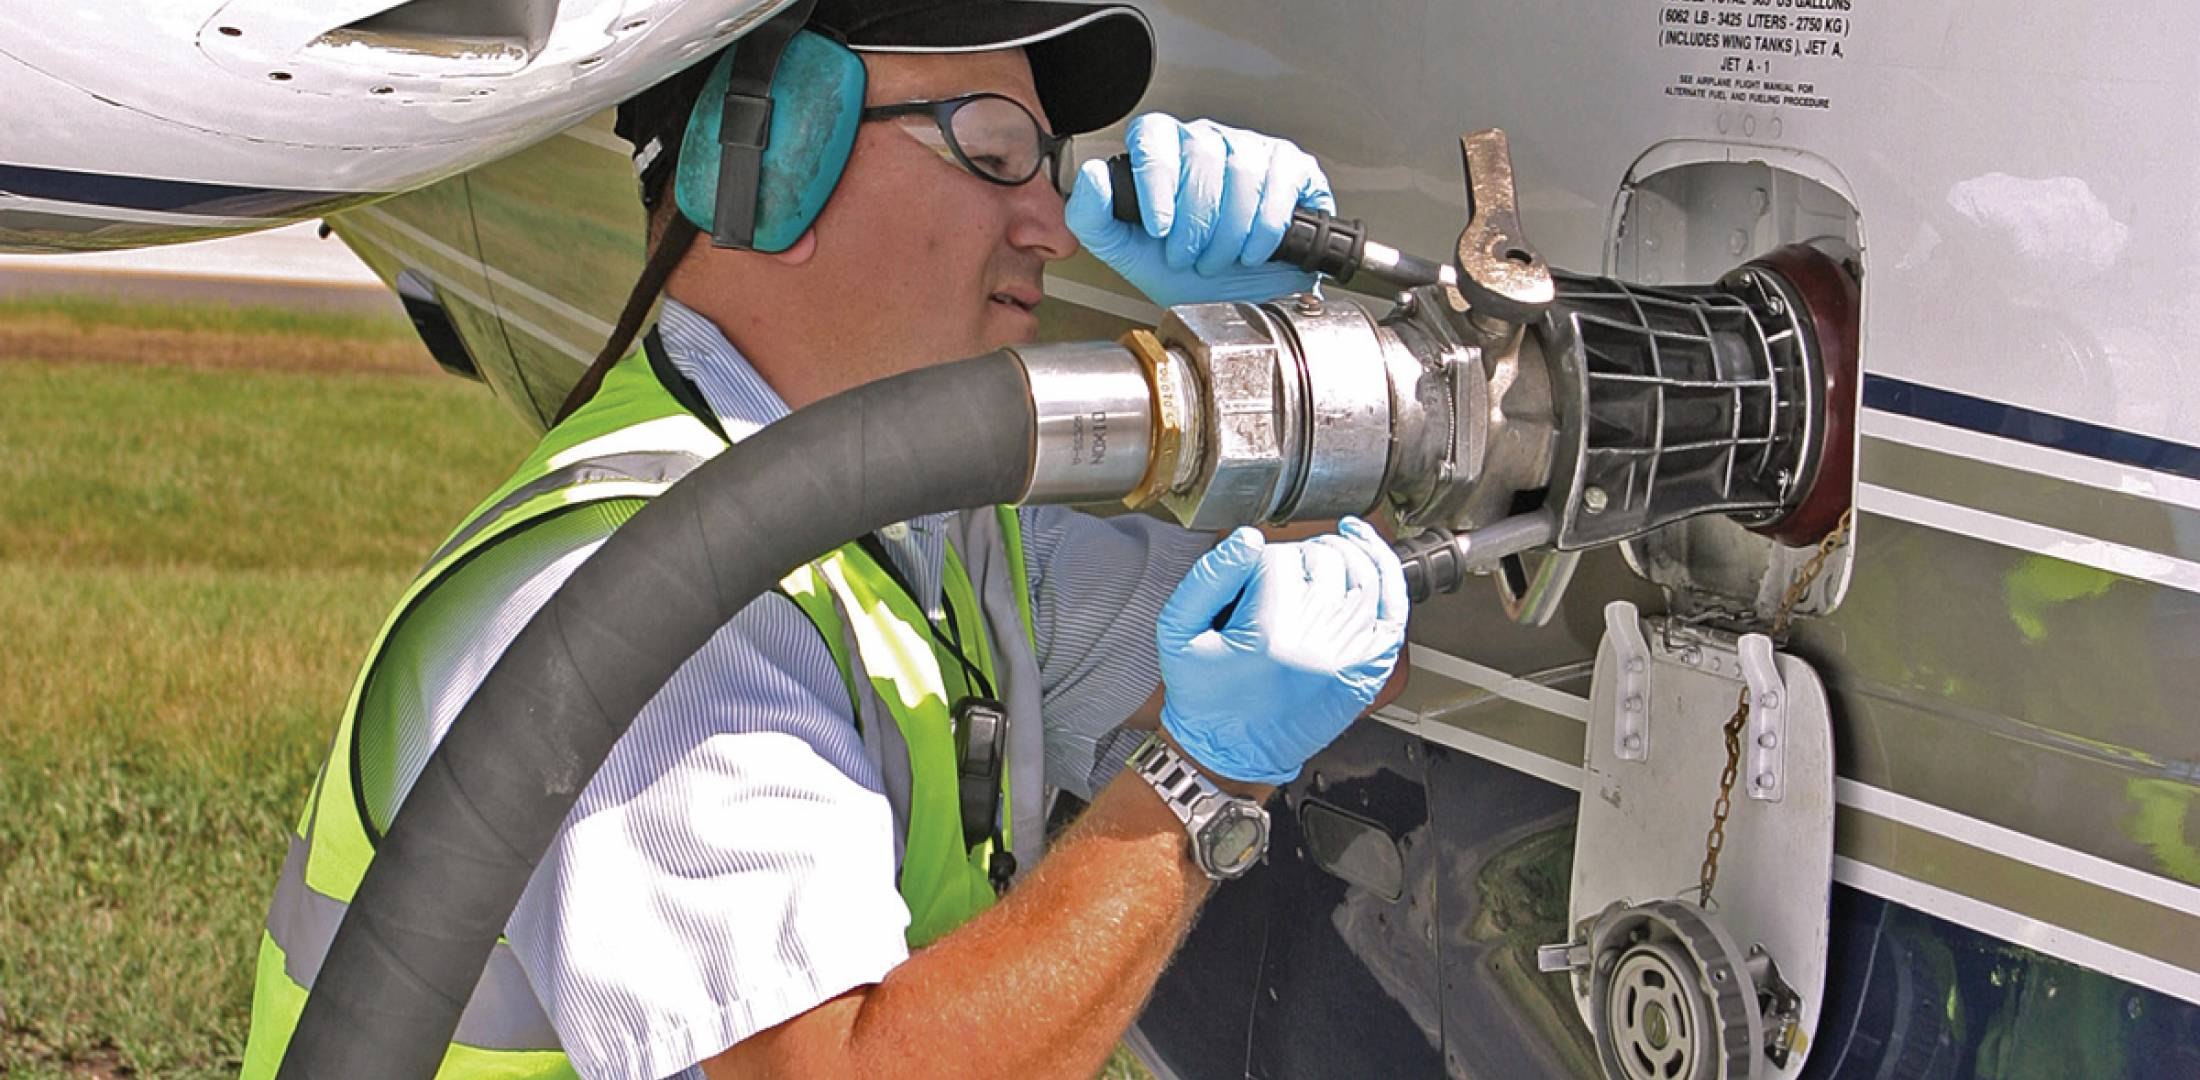 Aviation fuel taxes imposed on general aviation raise $622 million annually, according to the FAA. General aviation lobby groups believe that the aviation fuel tax is the fairest and most efficient way to collect GA's contribution to air traffic control system costs.